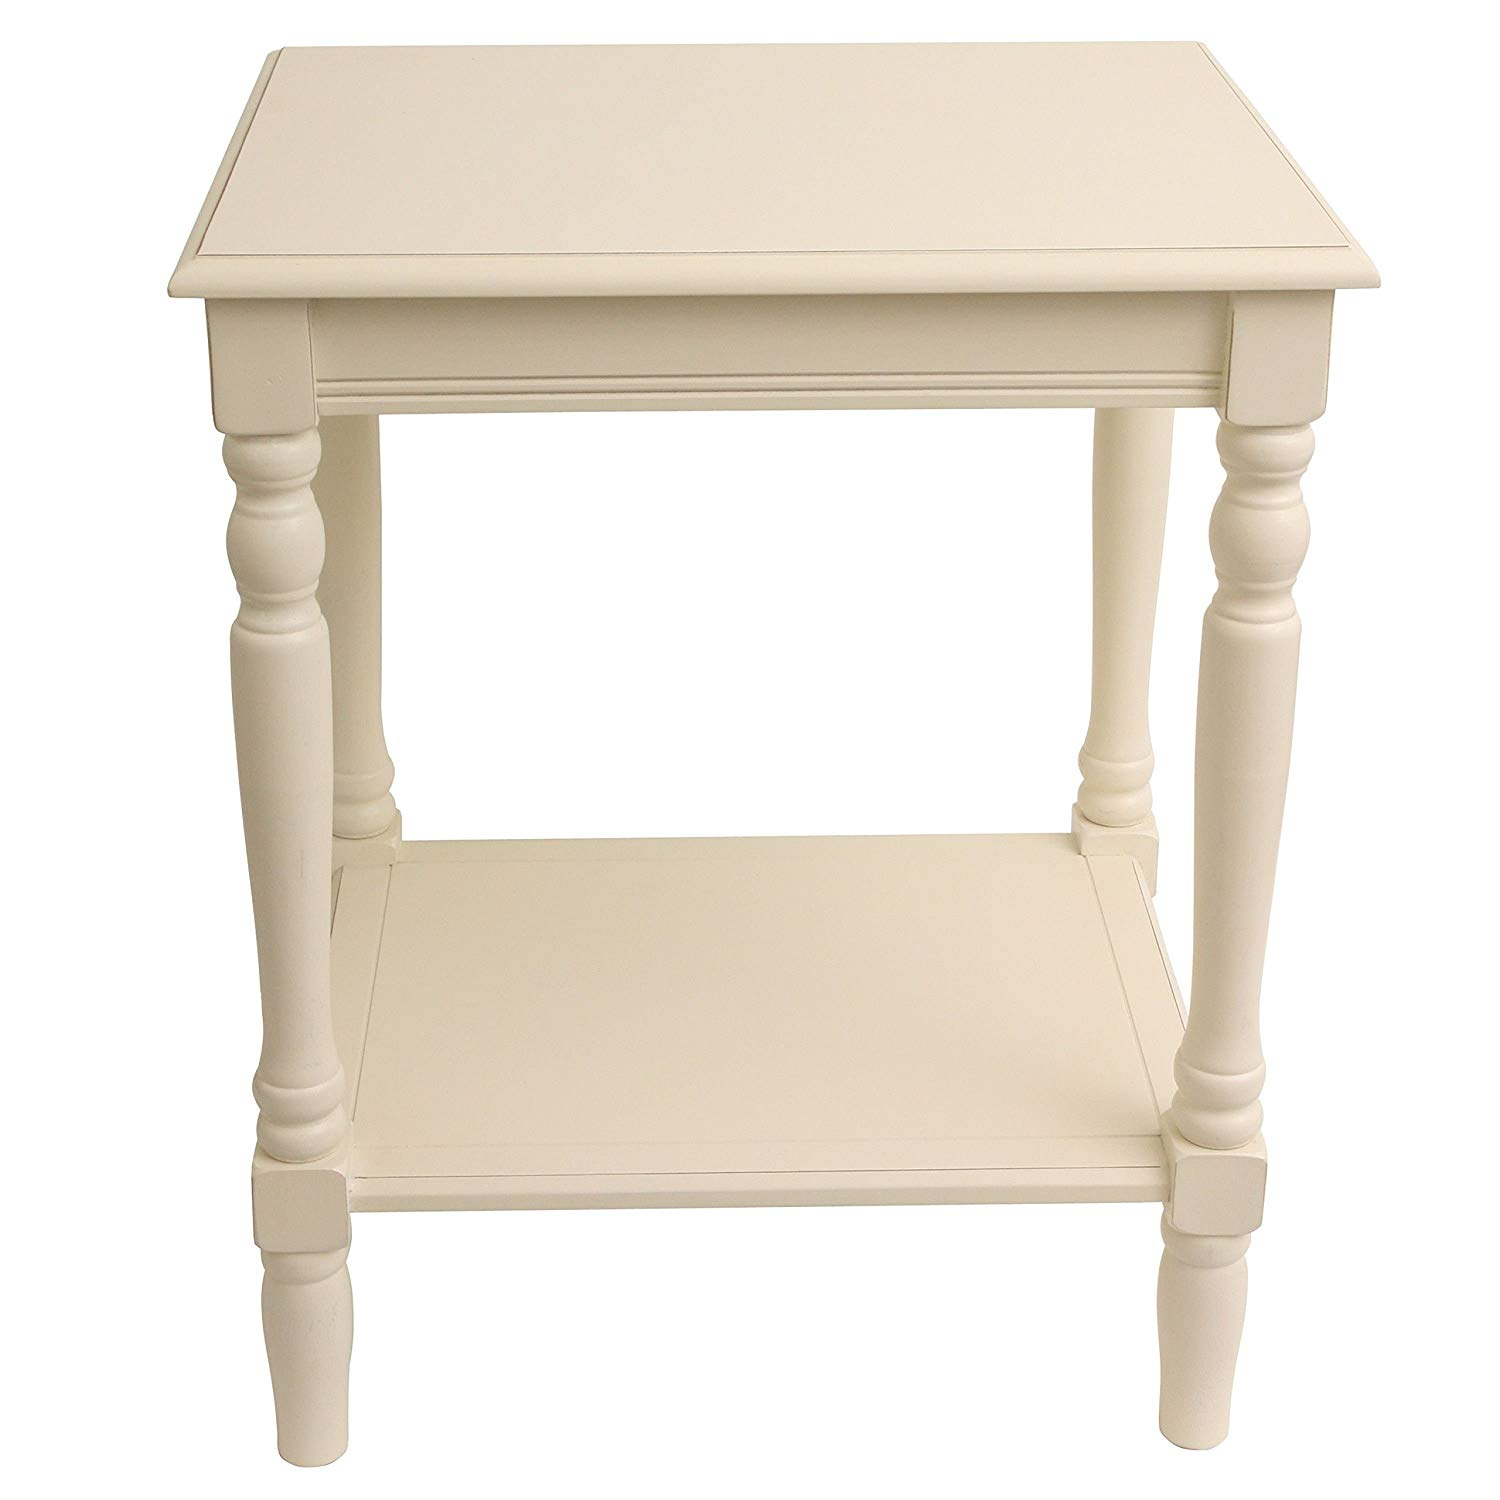 painted antique white end accent table with bottom shelf kitchen dining striped tablecloth thin console drawers best patio furniture covers metal umbrella base acrylic side ikea